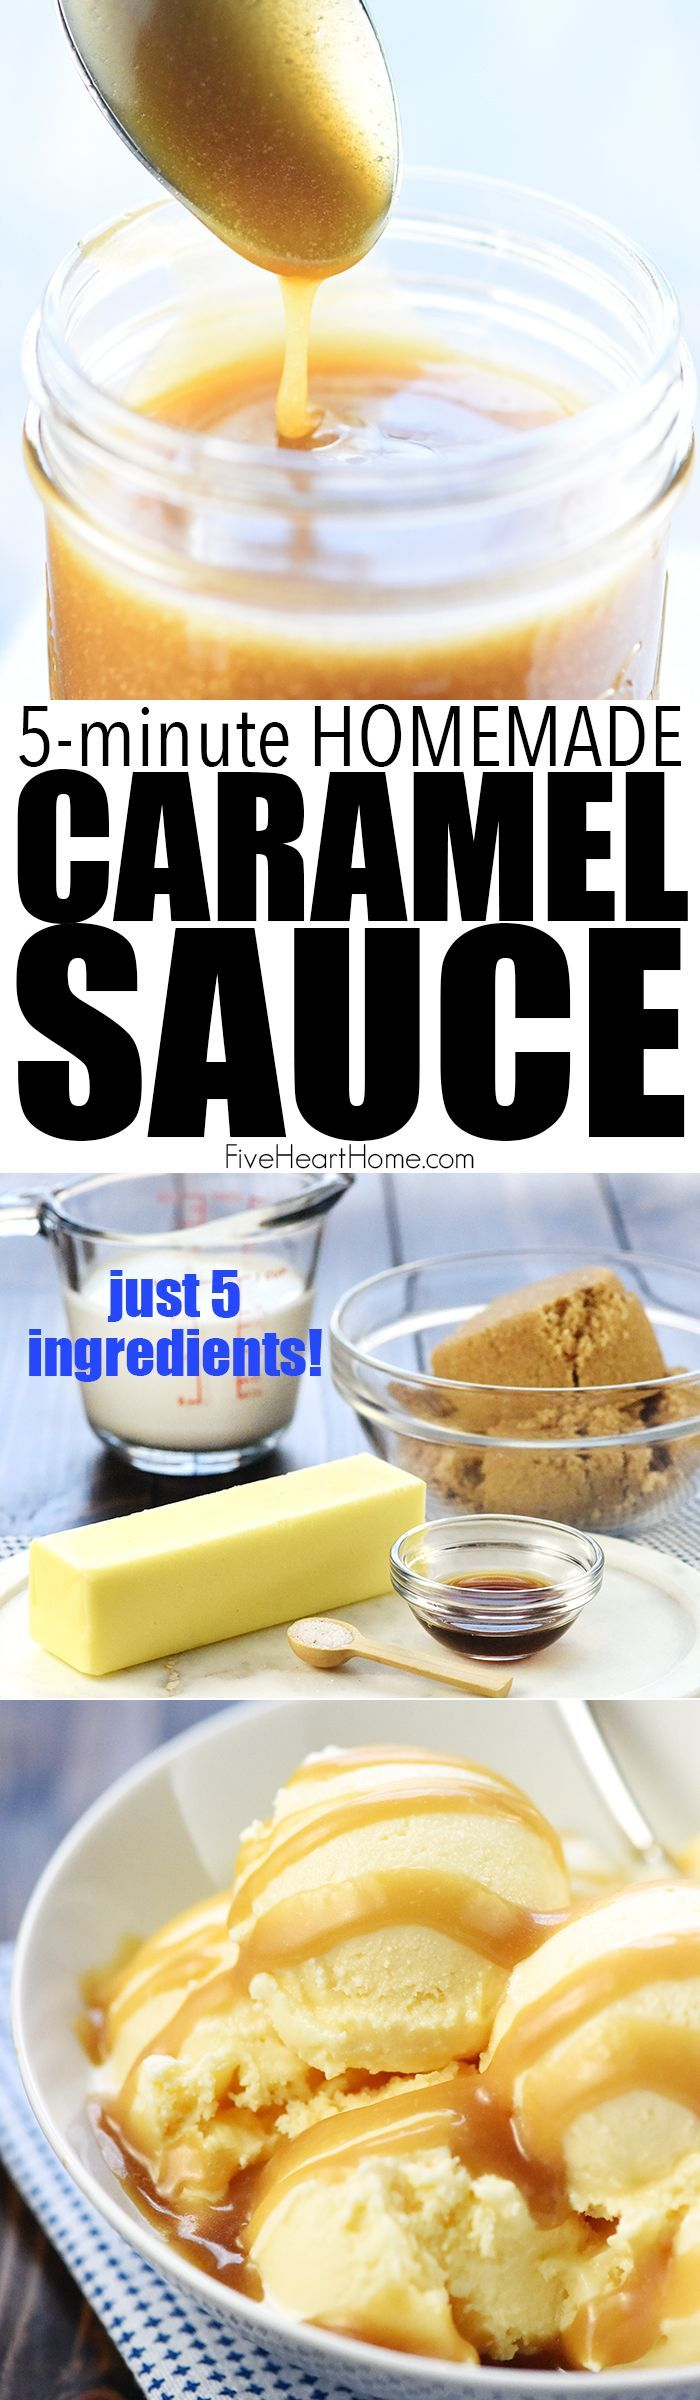 Quick & Easy Homemade Caramel Sauce ~ how to make yummy, thick caramel sauce with just five ingredients in five minutes...a perfect recipe for apples, brownies, ice cream, or as a gift! | FiveHeartHome.com via @fivehearthome